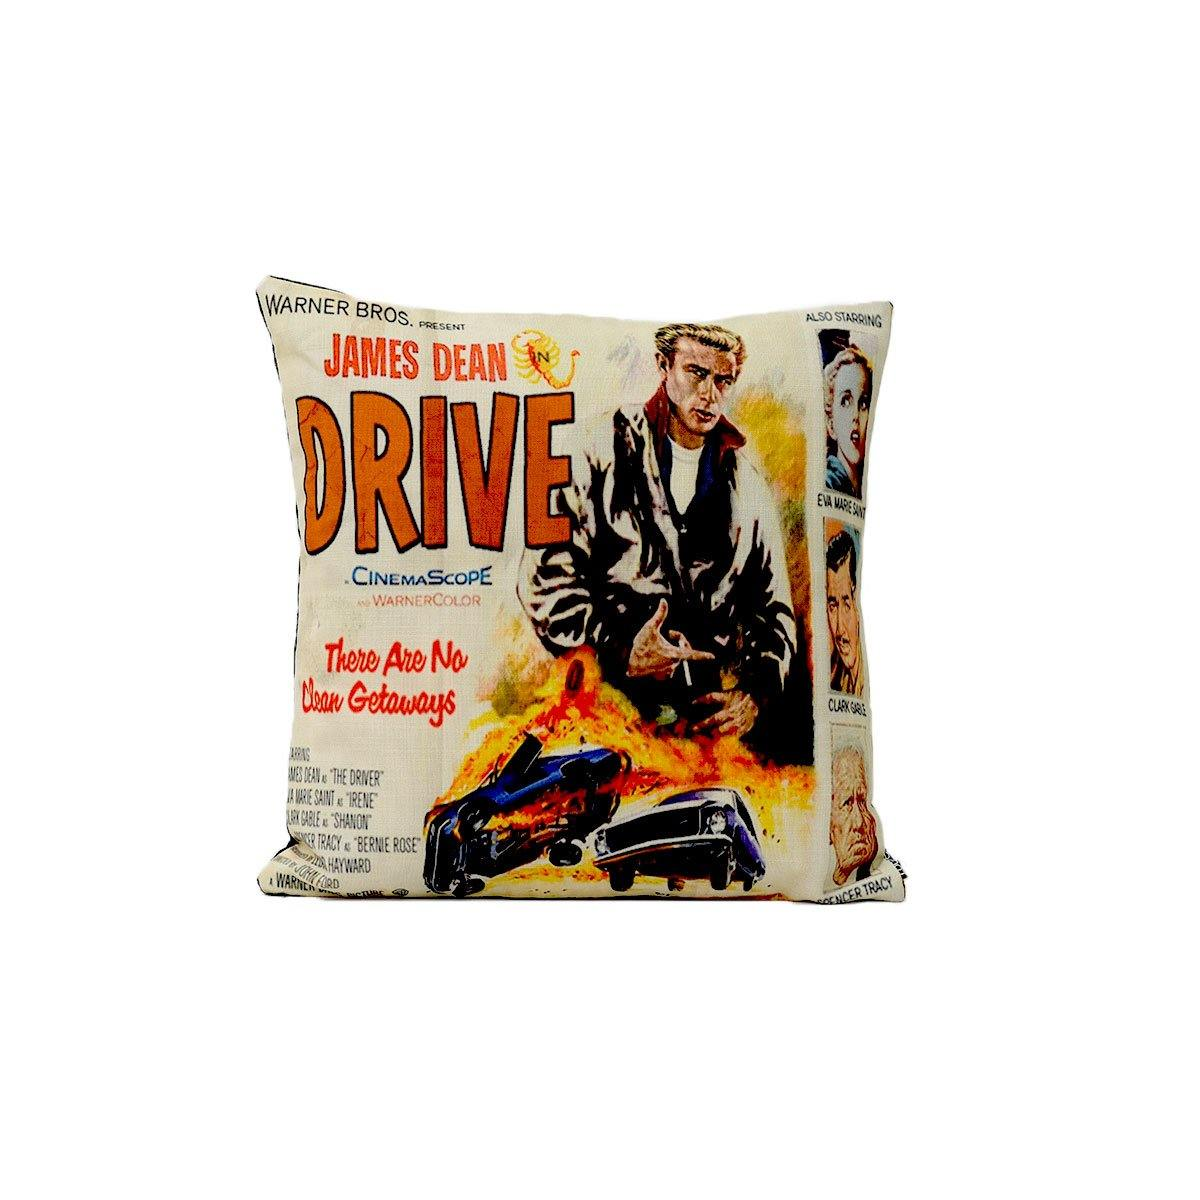 The Drive digital cushion